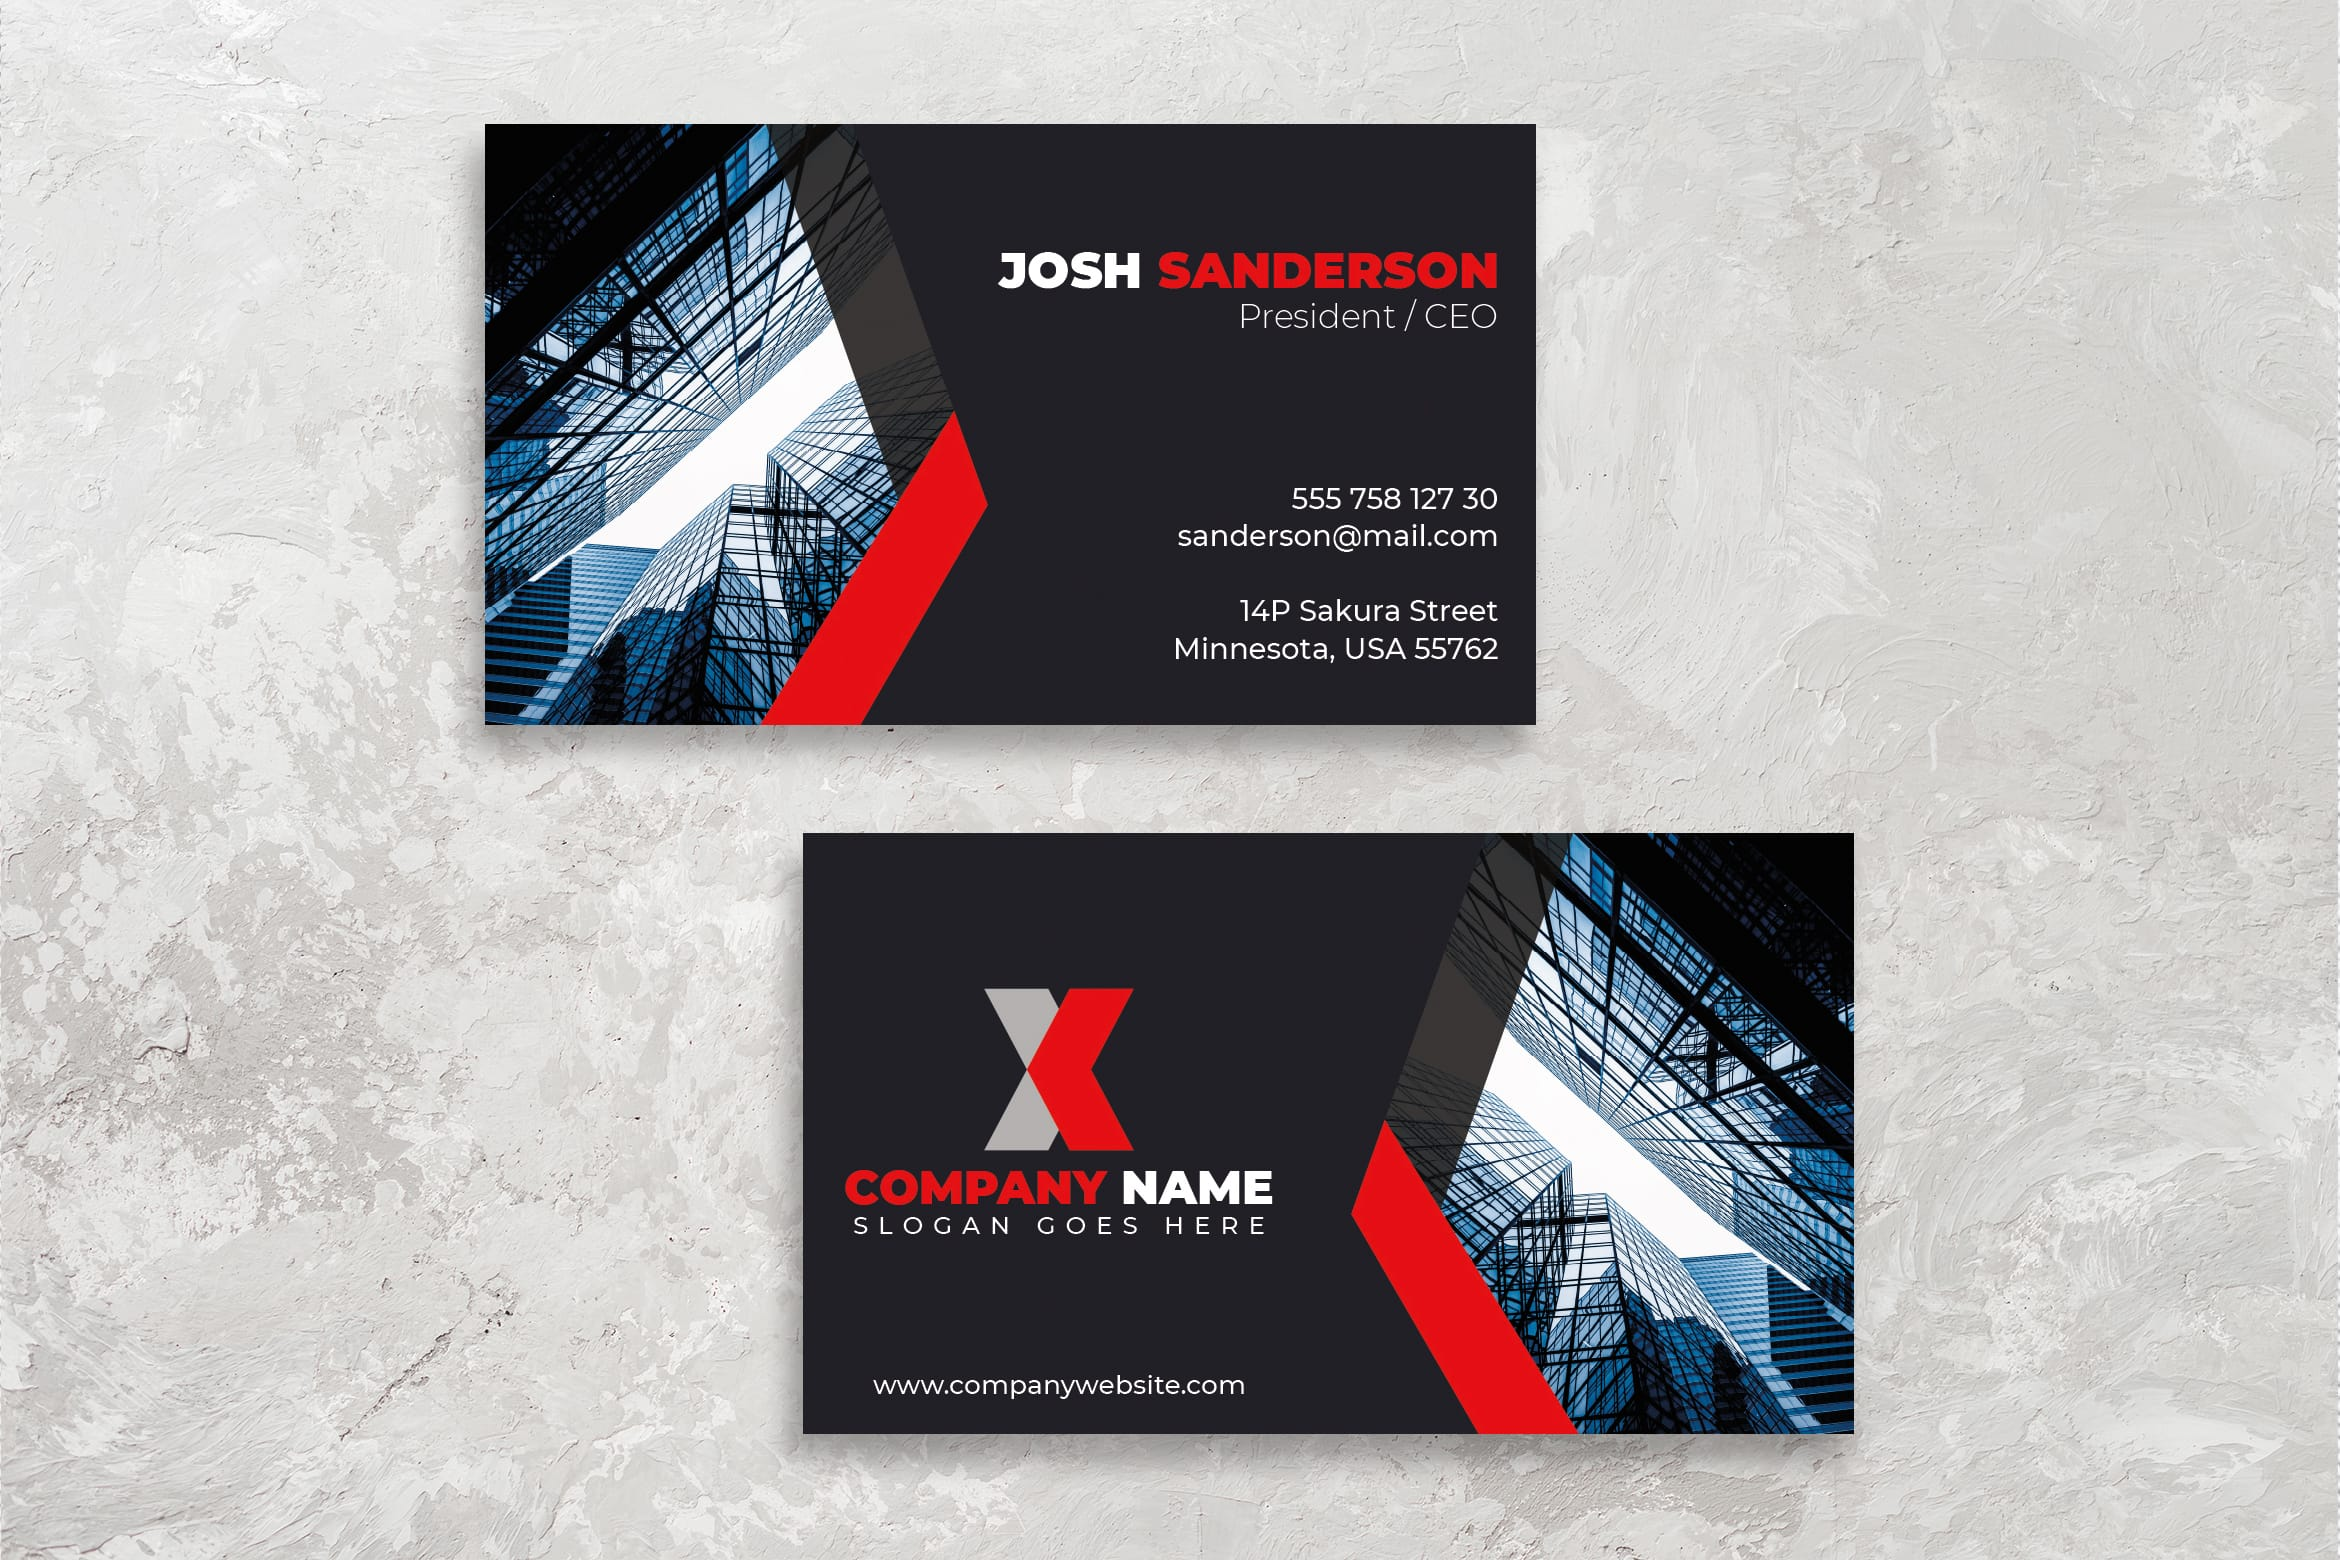 Business Card - Personal Identity Brand